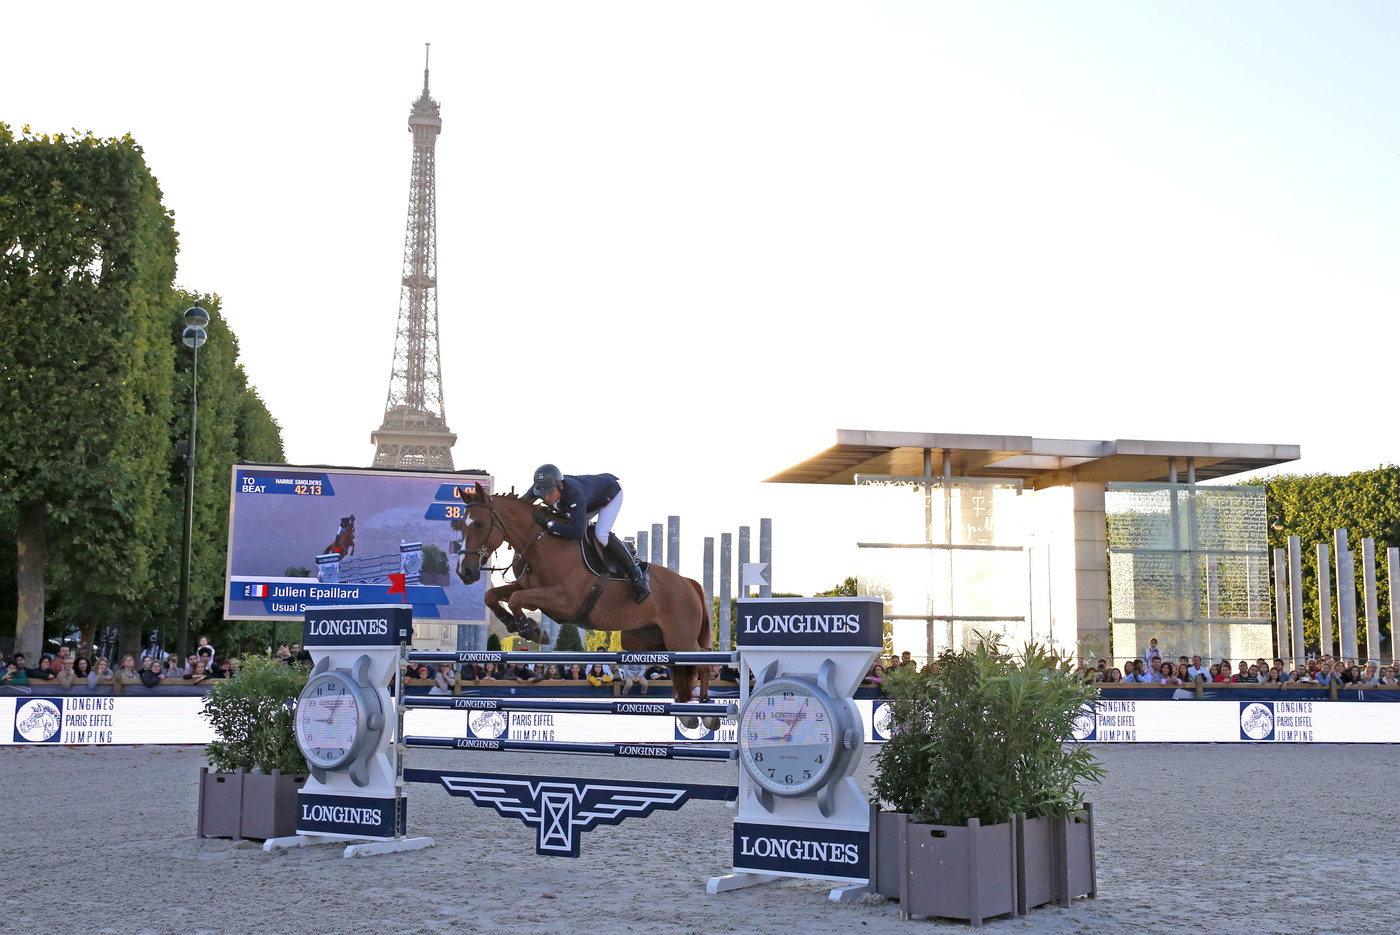 Longines Show Jumping Event: The Longines Paris Eiffel Jumping returned to its iconic location in the very heart of the French capital 3